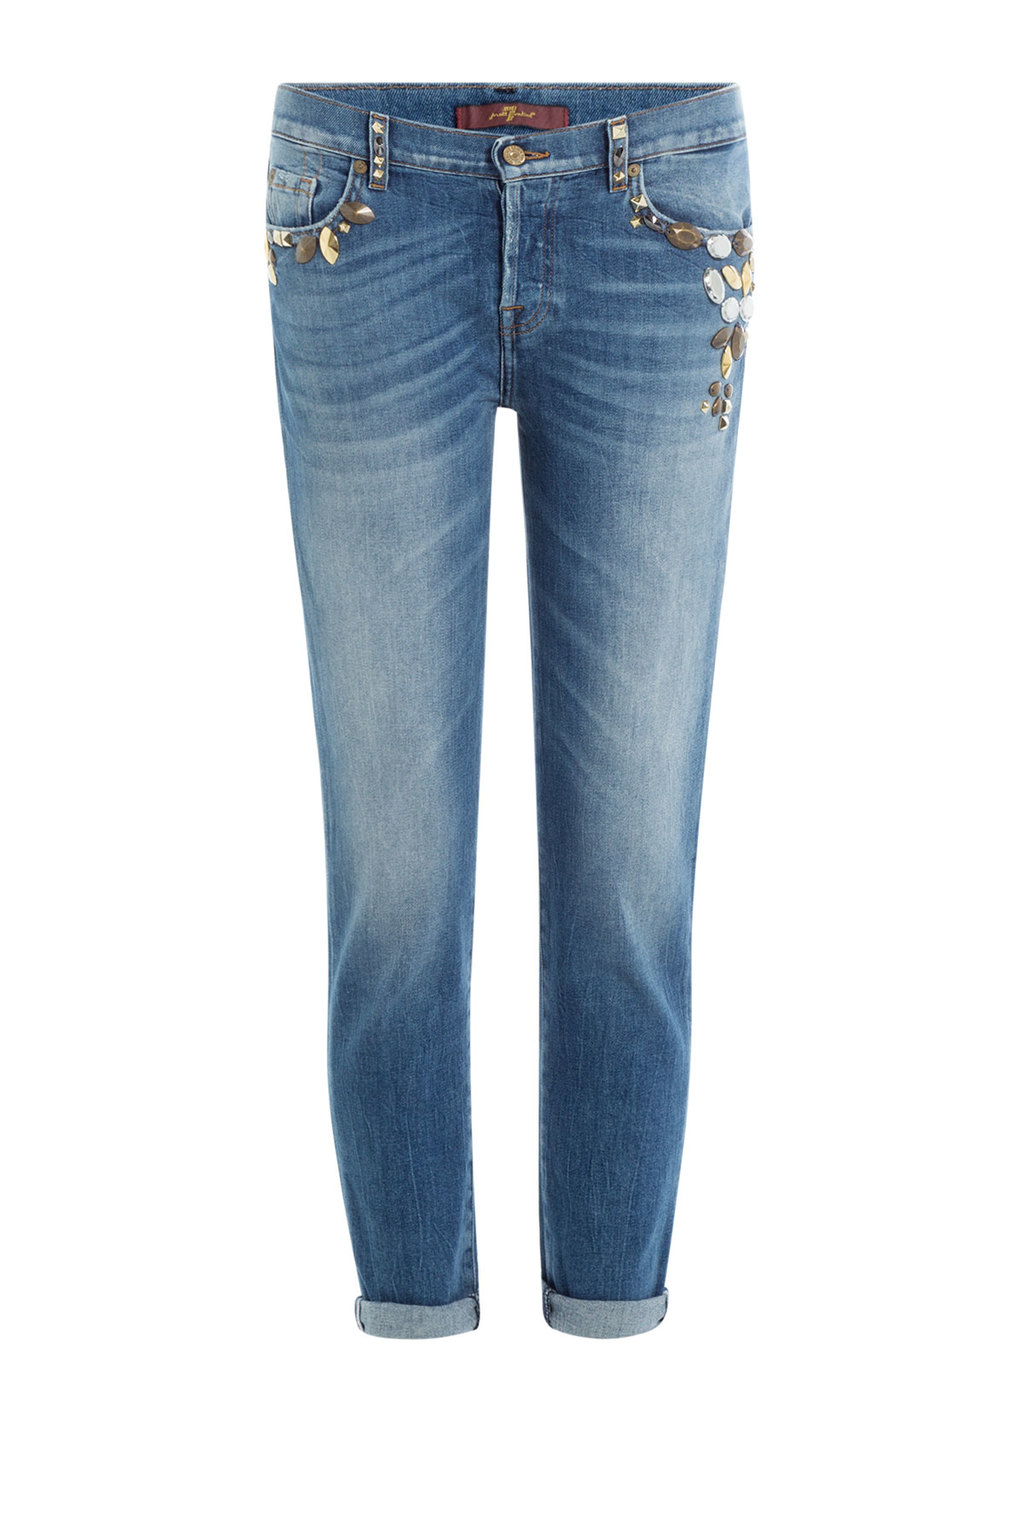 Embellished Cropped Jeans - pattern: plain; pocket detail: traditional 5 pocket; style: slim leg; waist: mid/regular rise; predominant colour: denim; occasions: casual; length: calf length; fibres: cotton - stretch; jeans detail: whiskering, washed/faded; texture group: denim; pattern type: fabric; embellishment: beading; season: s/s 2016; wardrobe: basic; embellishment location: hip